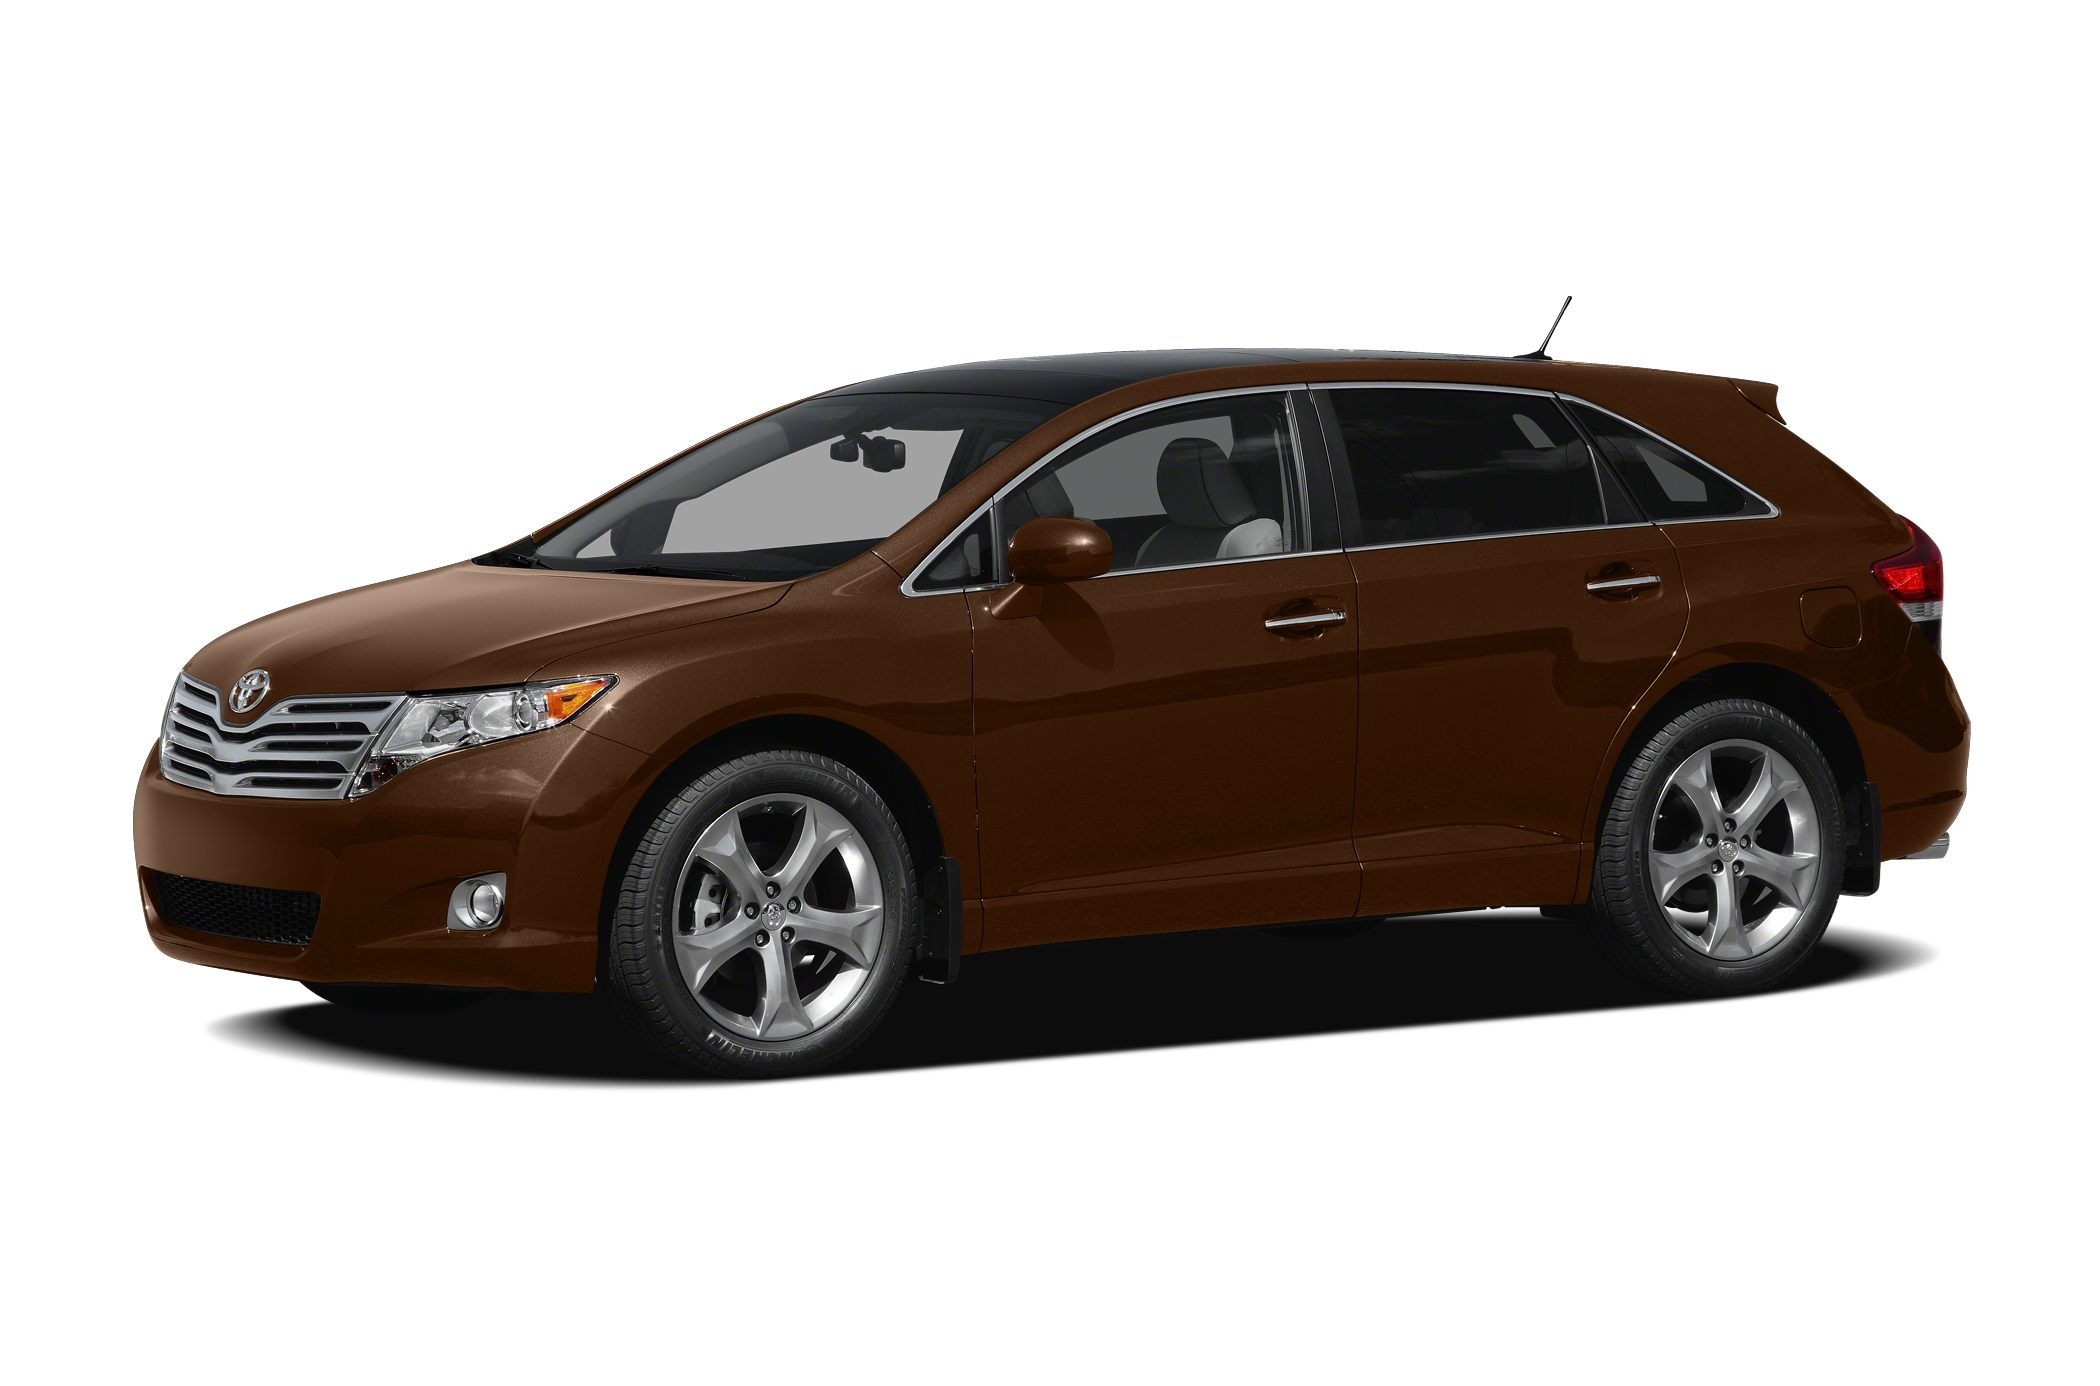 2011 Toyota Venza Base SUV for sale in Bemidji for $16,995 with 86,644 miles.